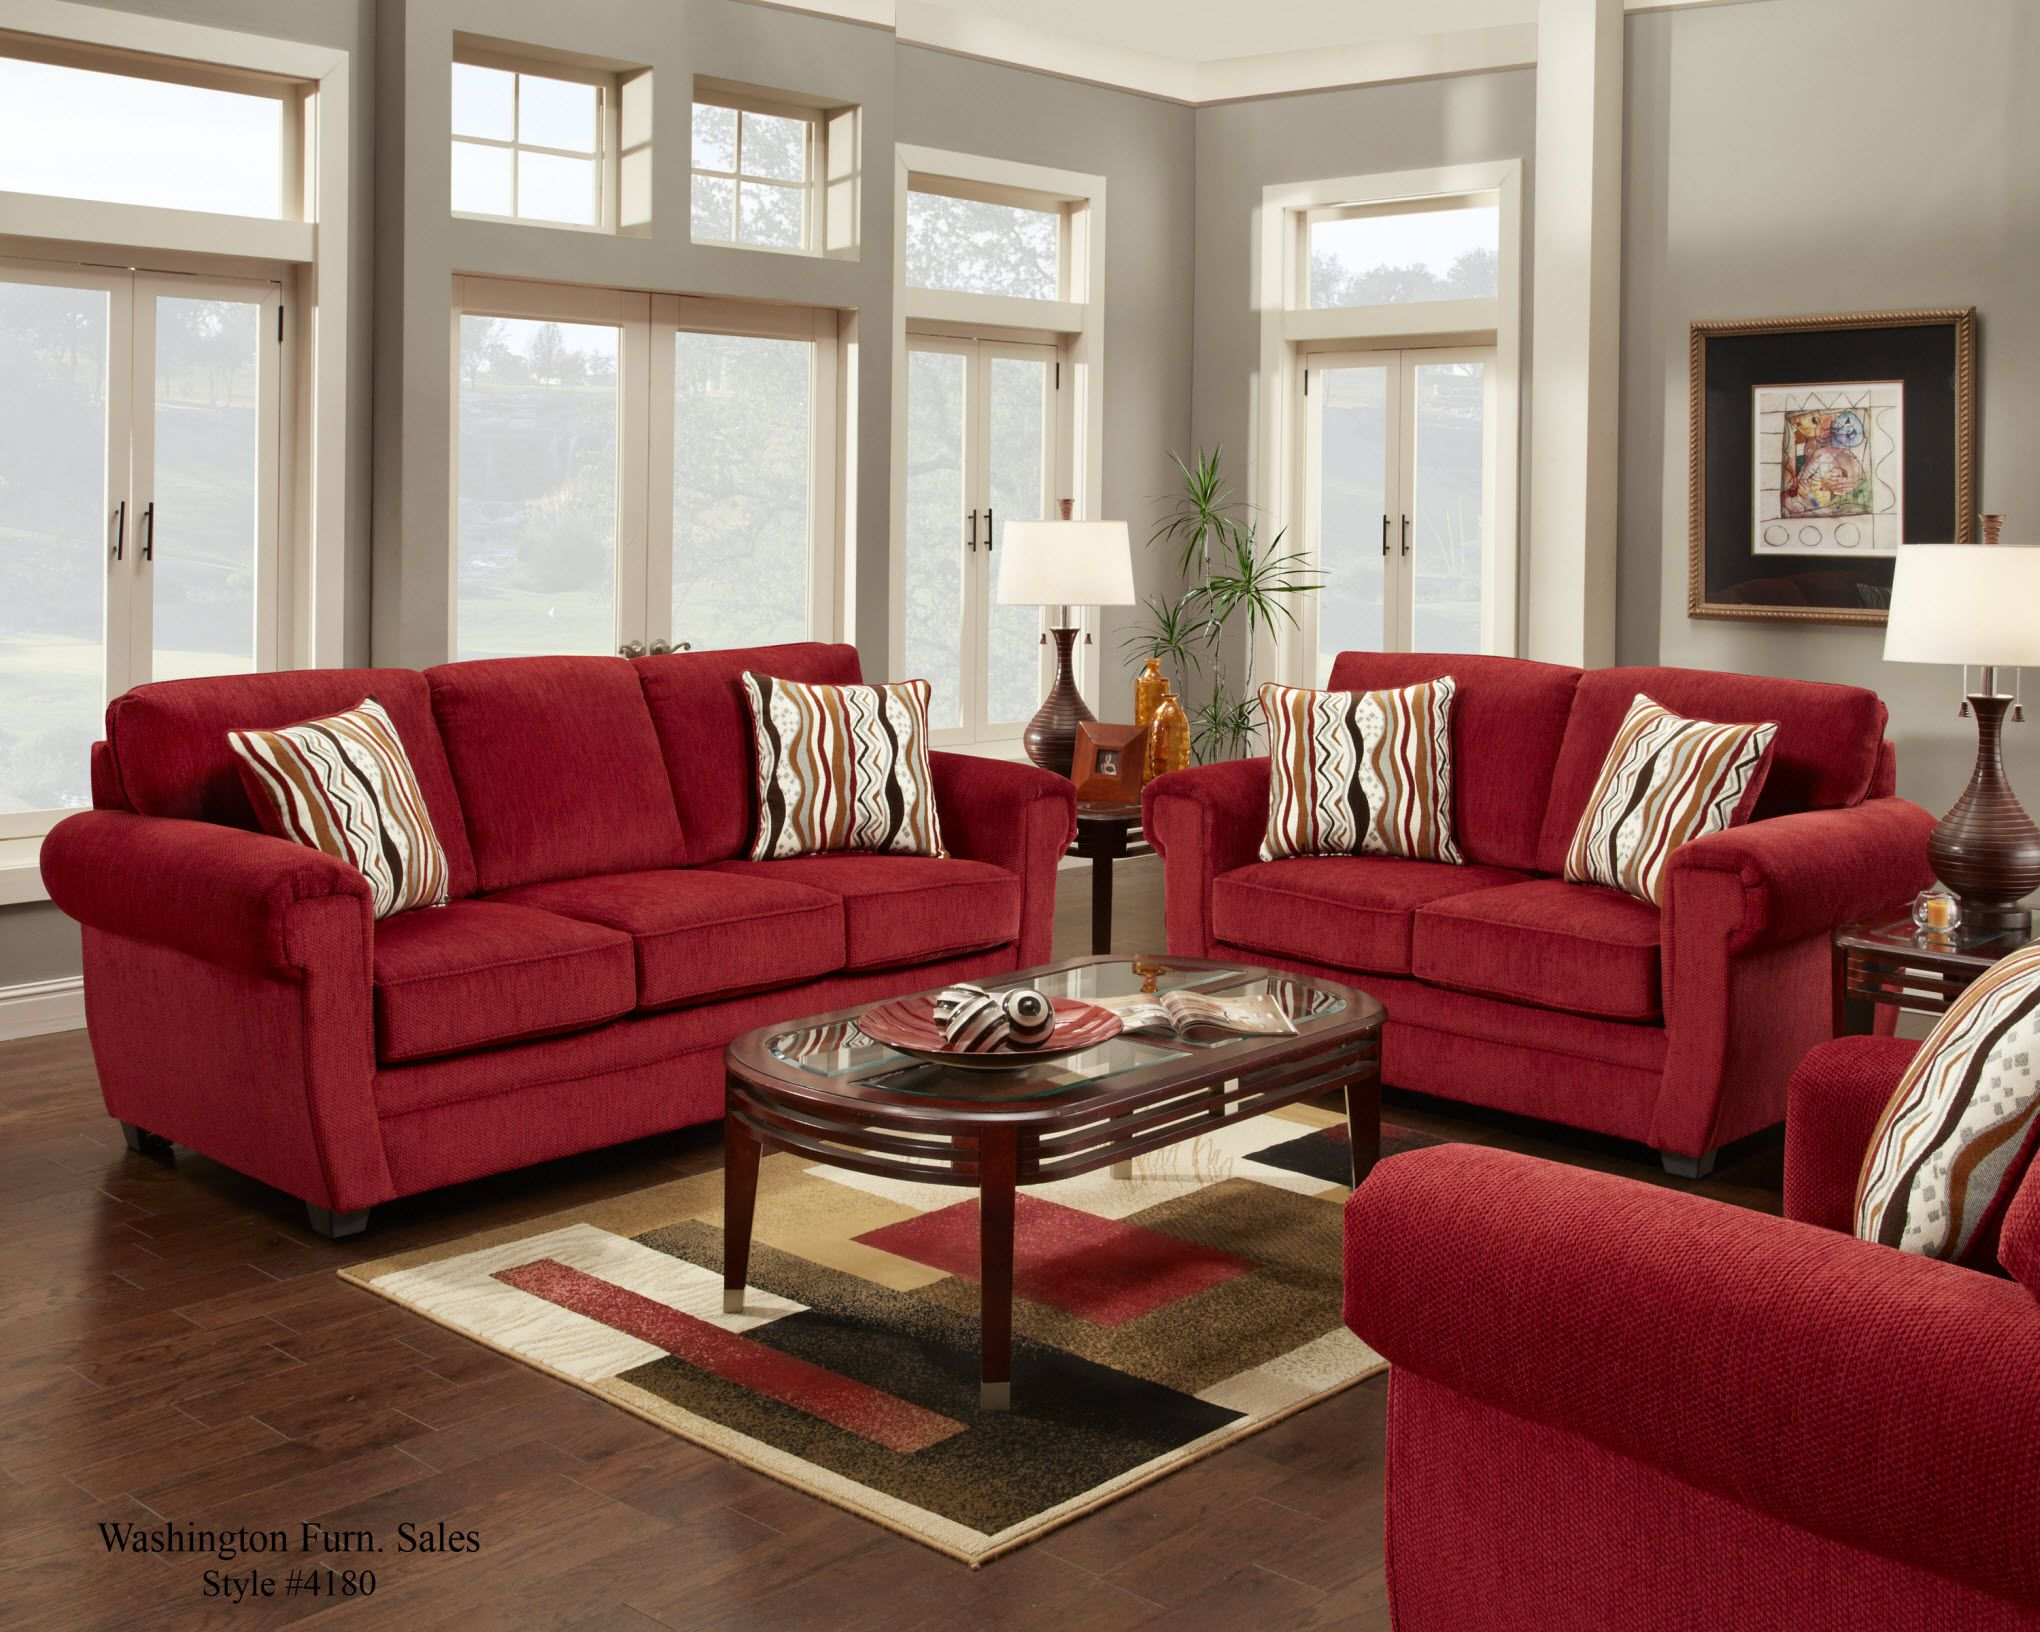 rooms ideas red hgtv room dining pictures living design couch and vibrant sofas